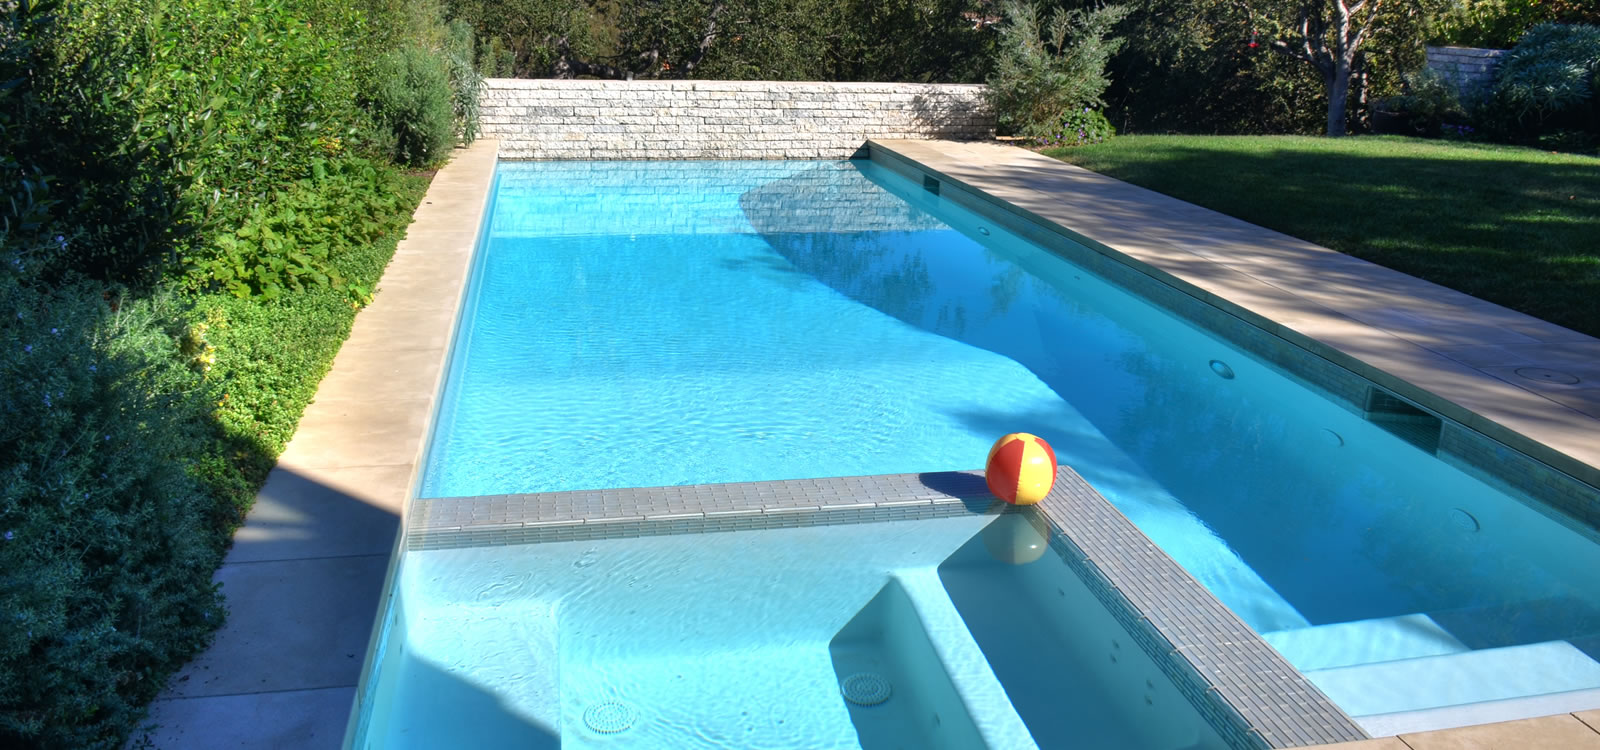 Los Angeles Pool U0026 Spa Design With BBQ Island And Fire Feature